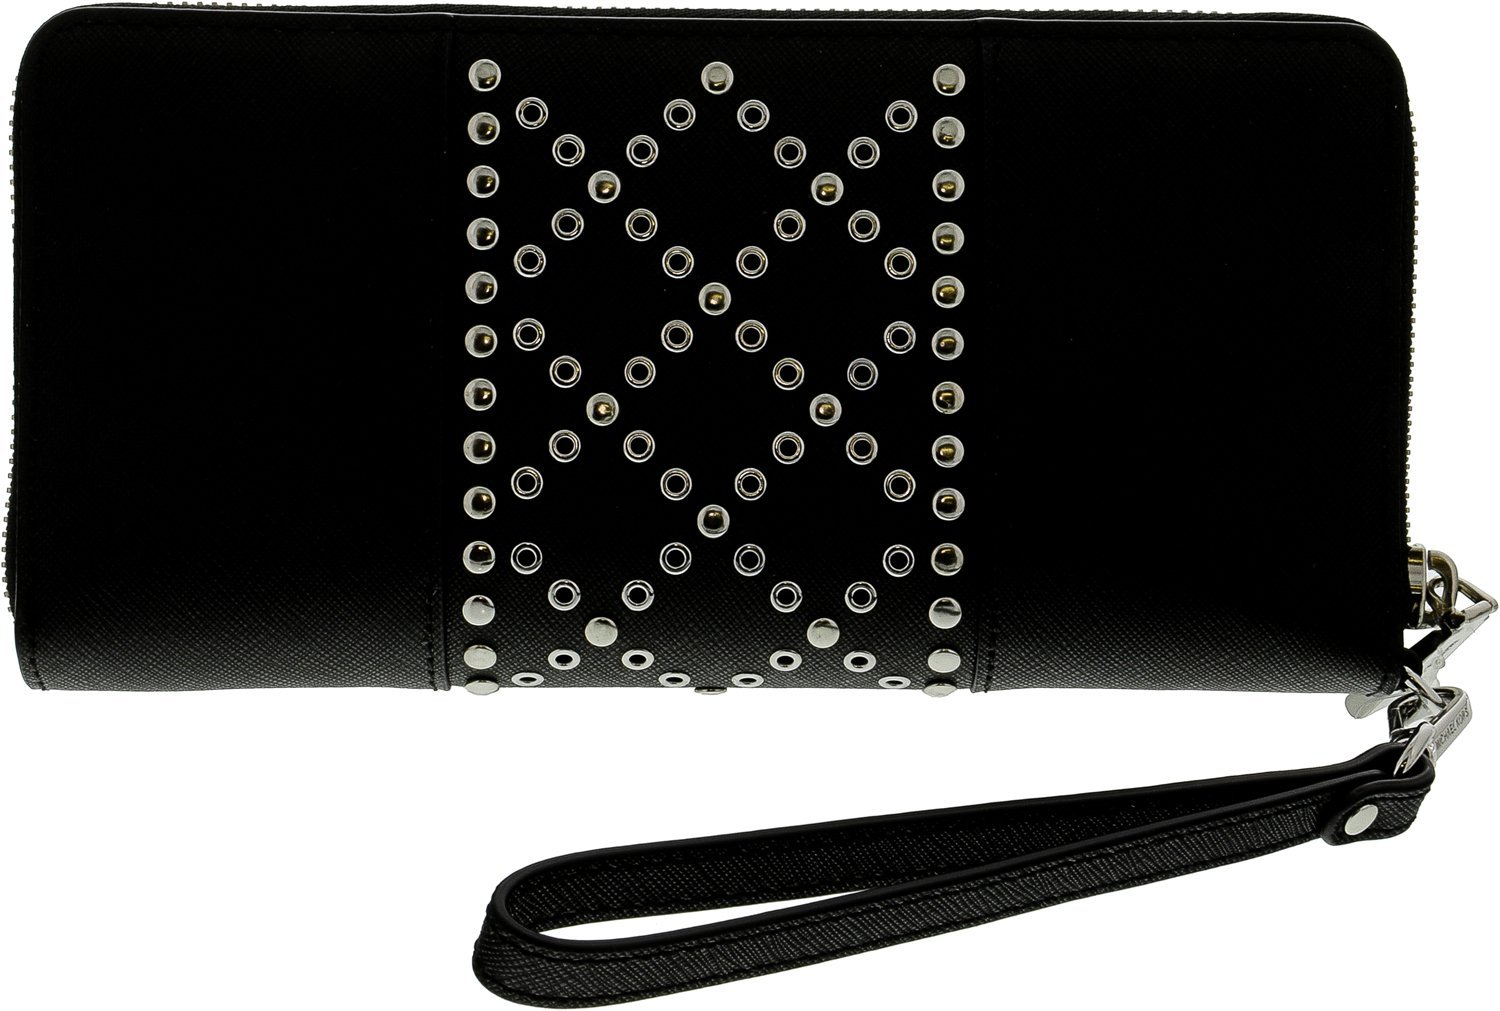 Michael Kors Money Pieces Travel Continental Wallet Black Leather by Michael Kors (Image #3)